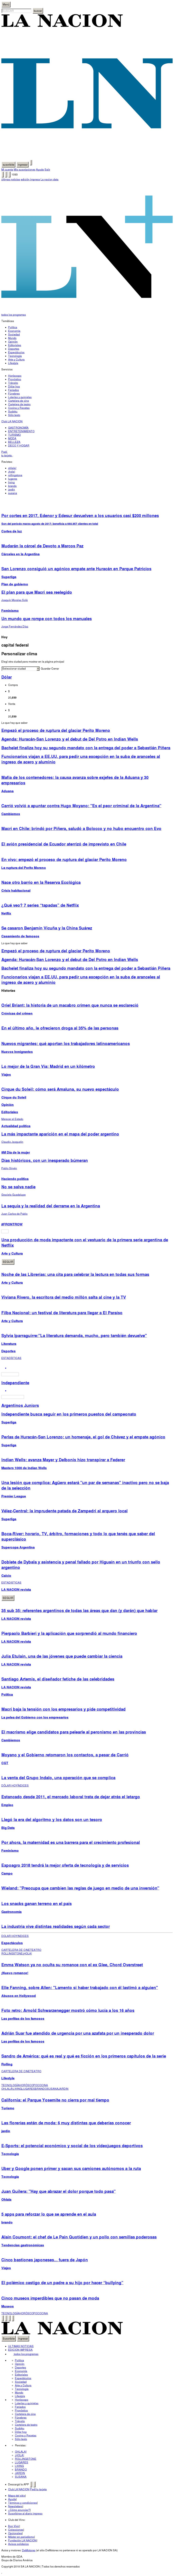 lanacion.com at Monday March 12, 2018, 1:13 a.m. UTC